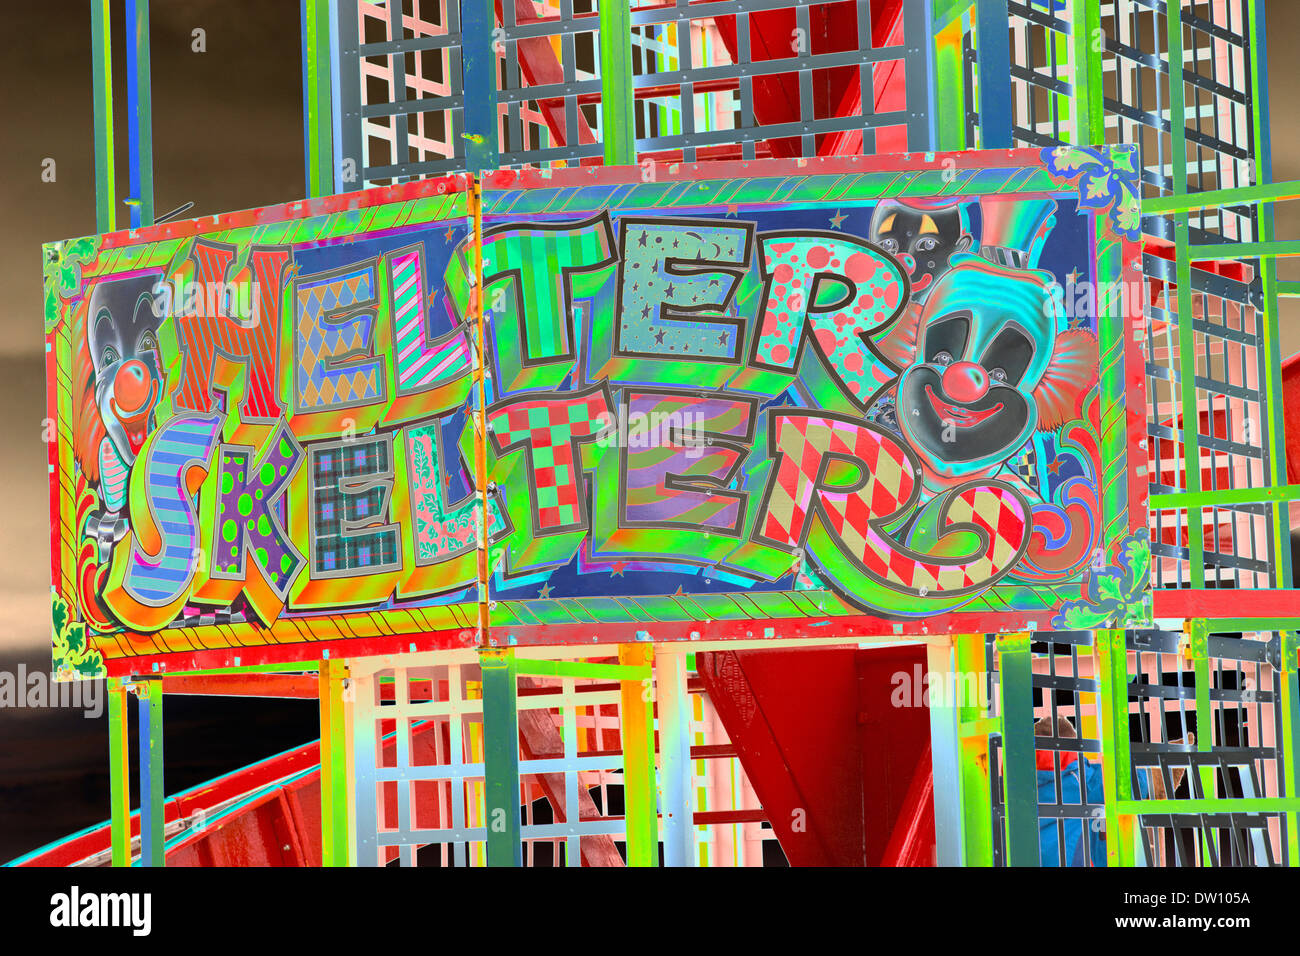 Close up of Helter Skelter sign at fairground - Stock Image